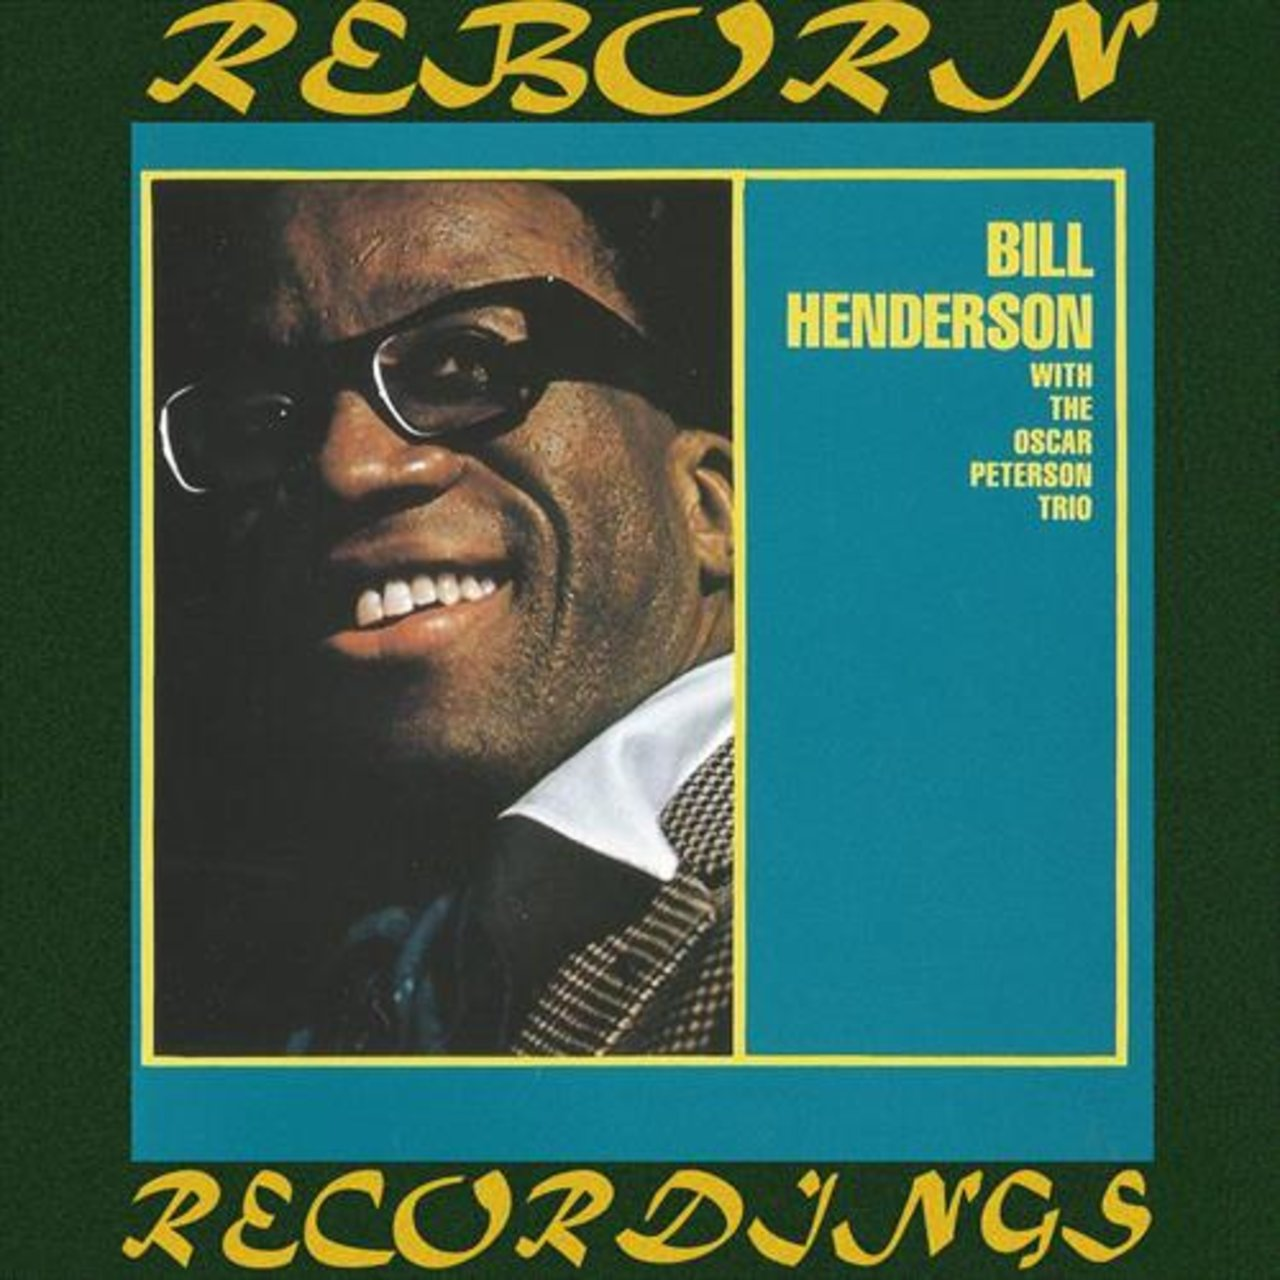 Bill Henderson With The Oscar Peterson Trio (Expanded, HD Remastered)